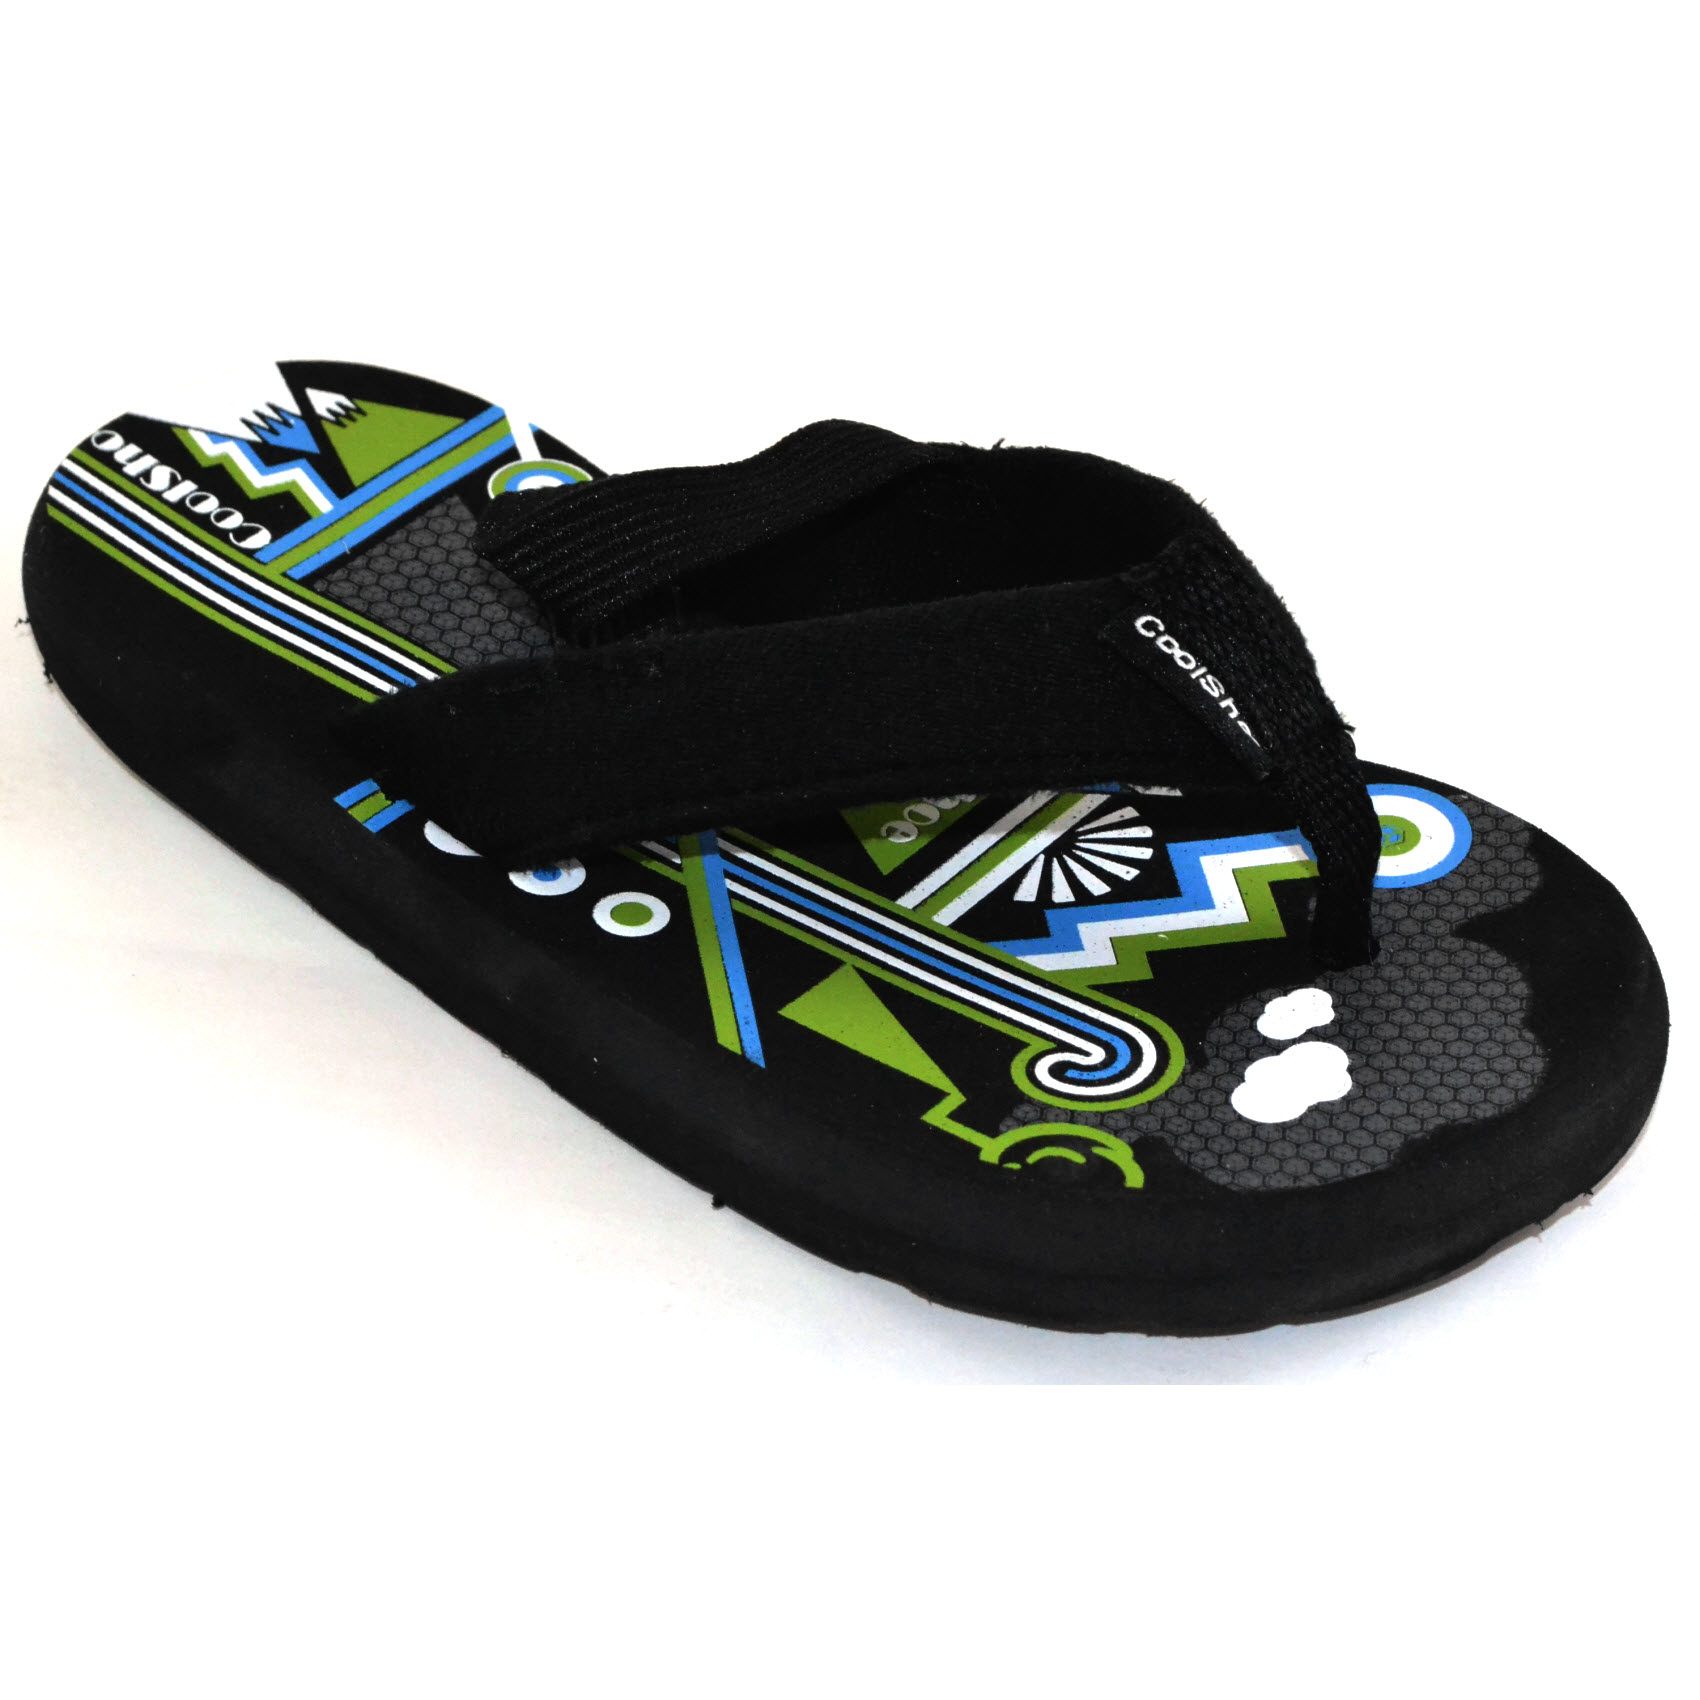 cool shoe landscape boy toddler flip flops in black boys. Black Bedroom Furniture Sets. Home Design Ideas